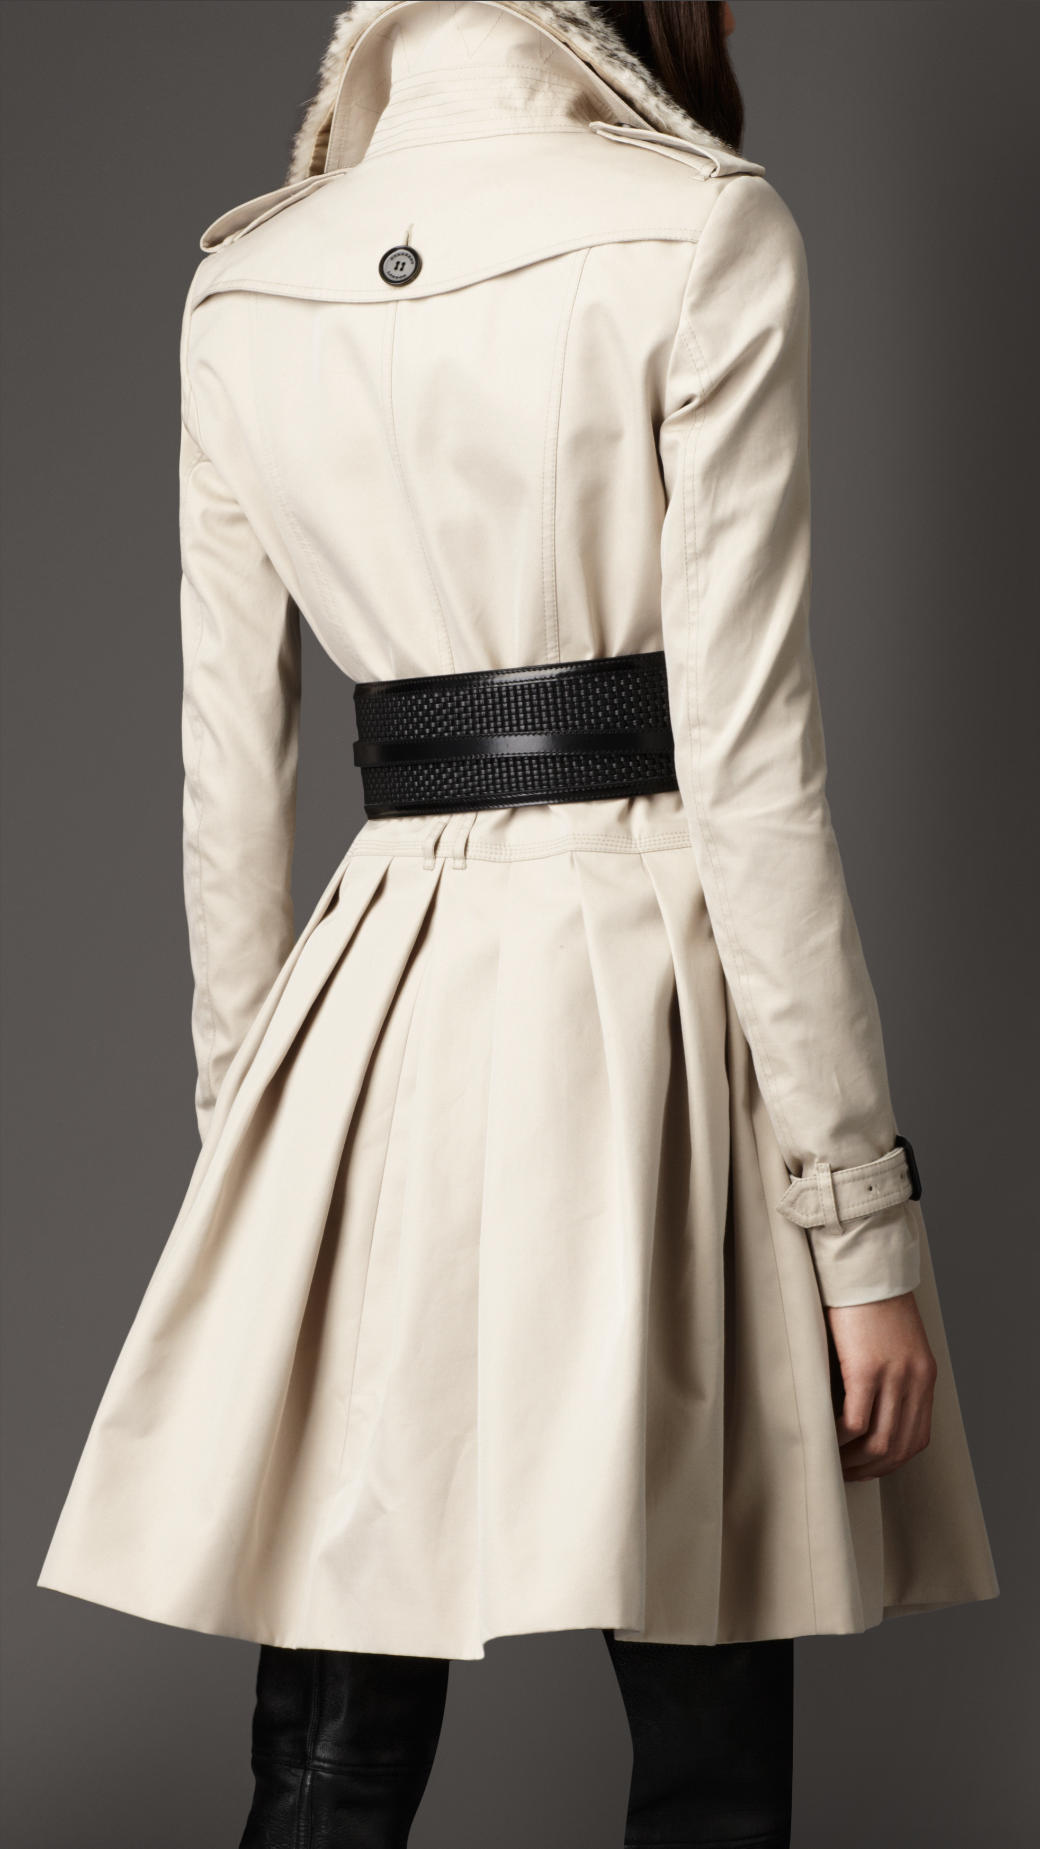 Burberry Midlength Cotton Gabardine Fur Collar Trench Coat